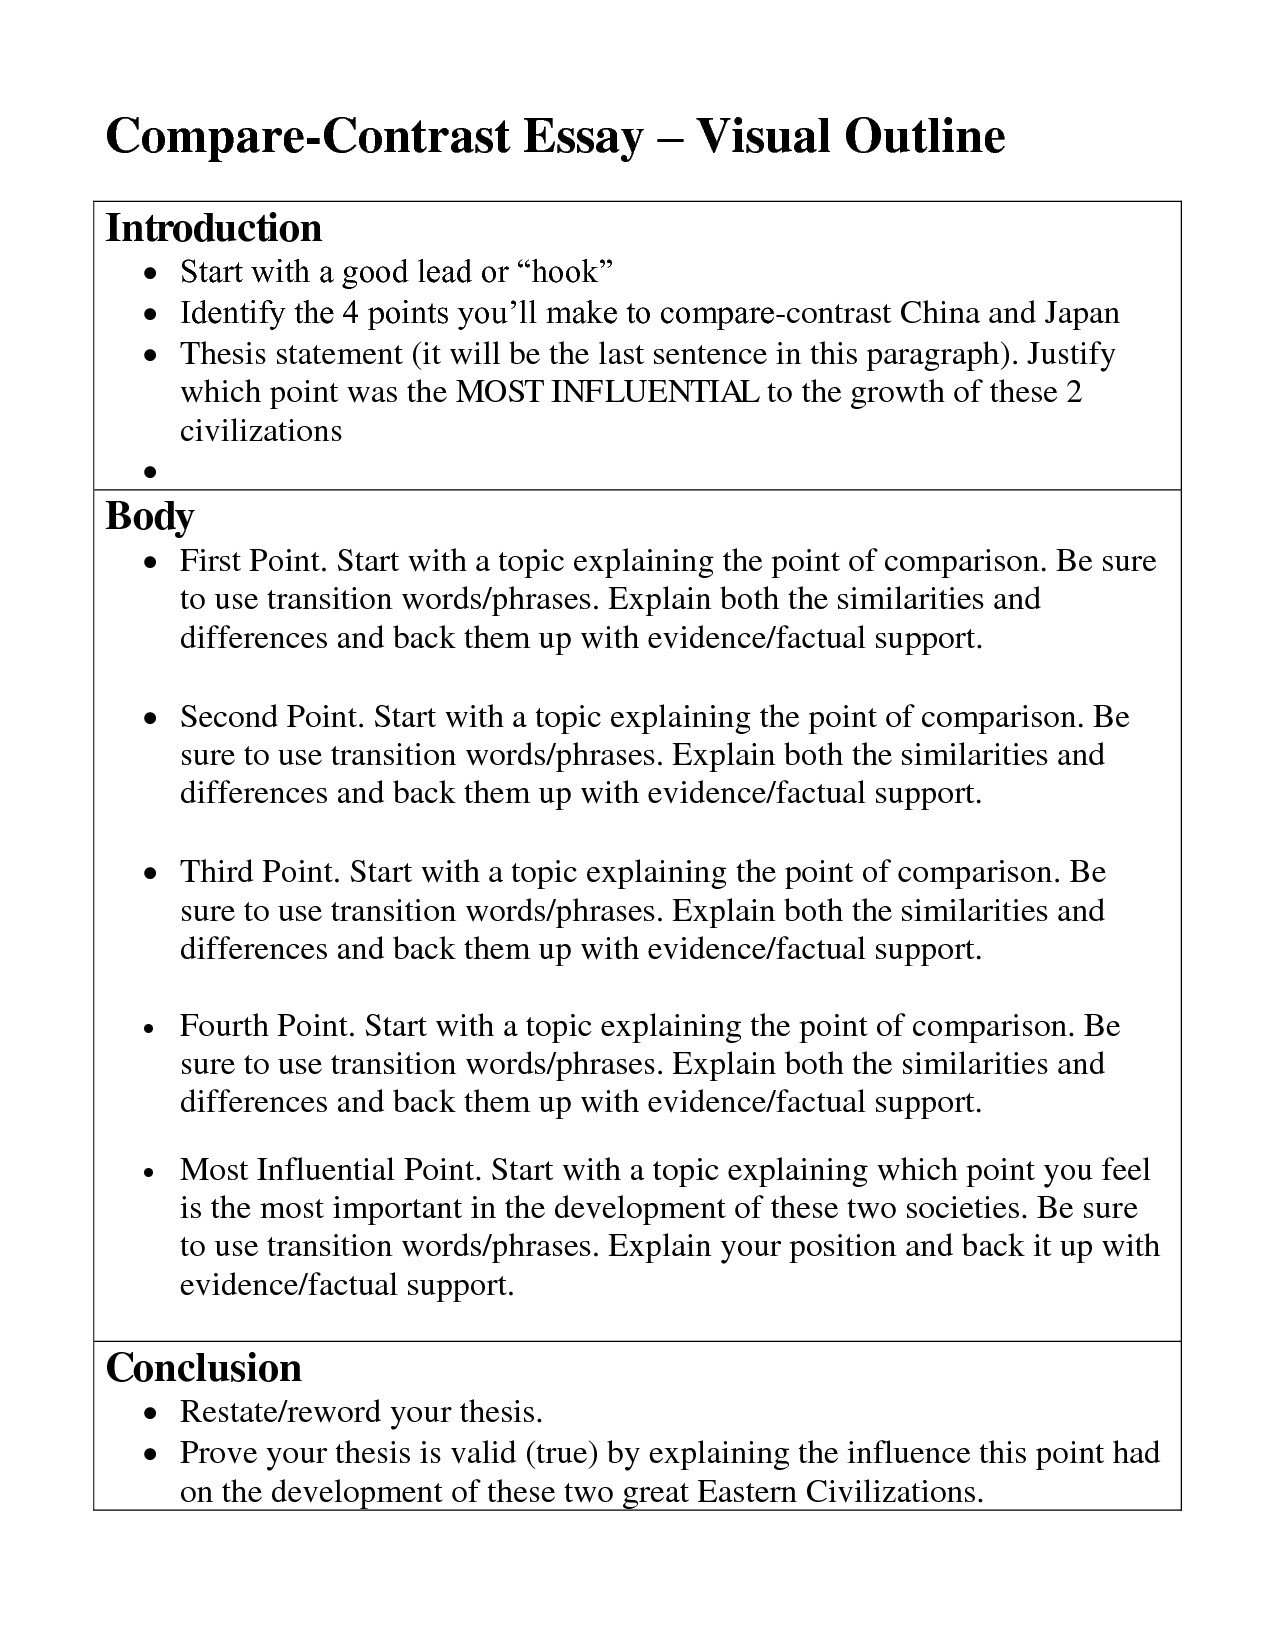 014 Good Hook For An Essay Writing Hooks Worksheet Refrence Laws Fresh How To Write Ess